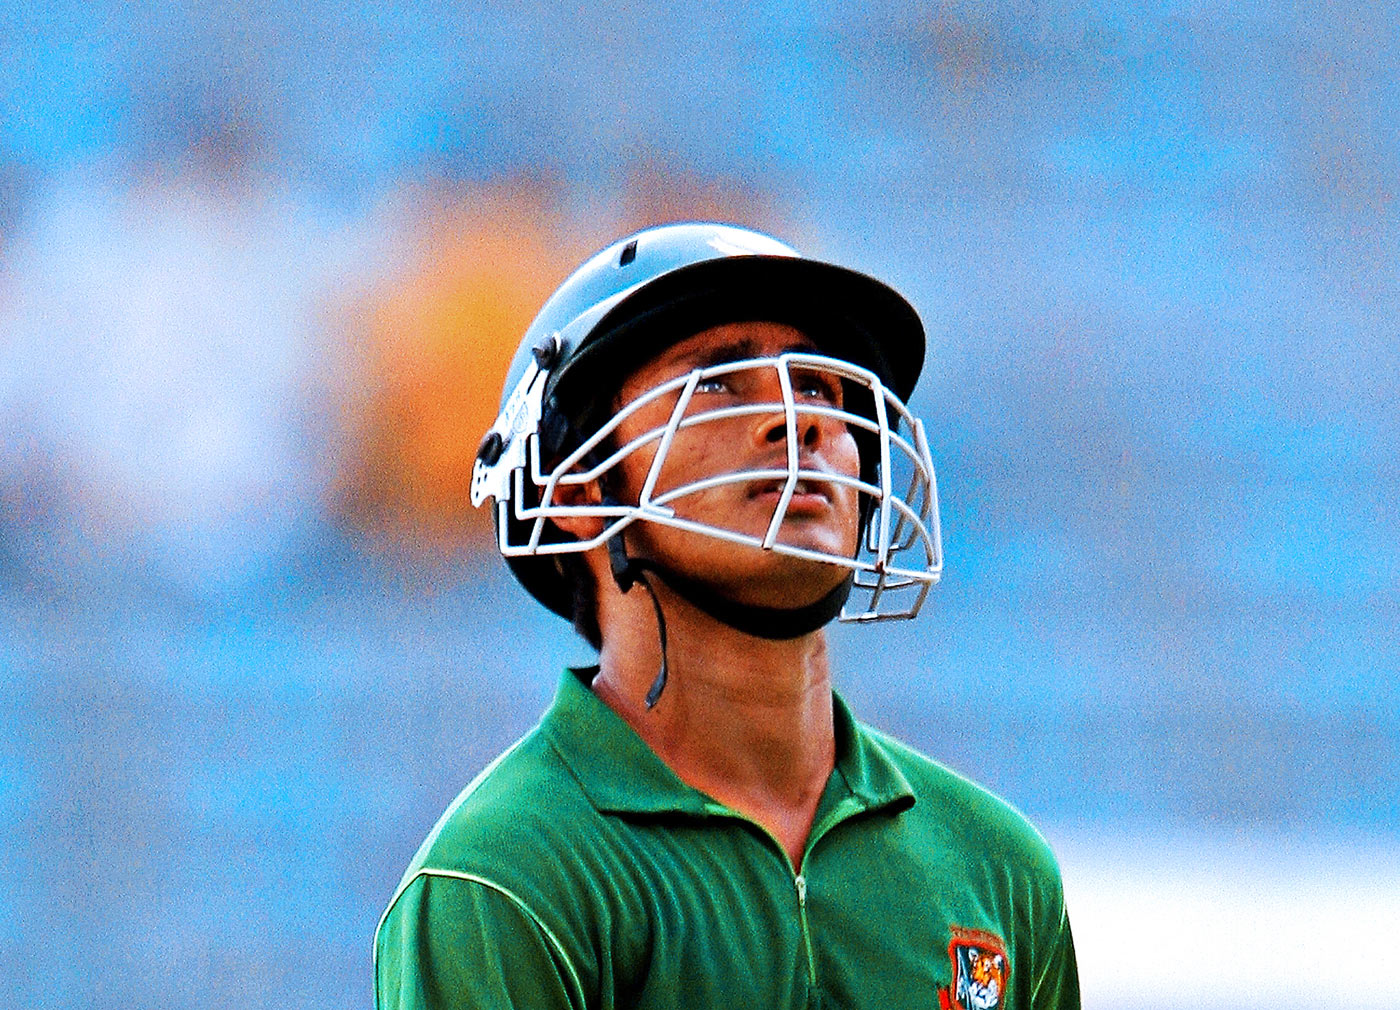 Mohammad Ashraful walks back after being dismissed